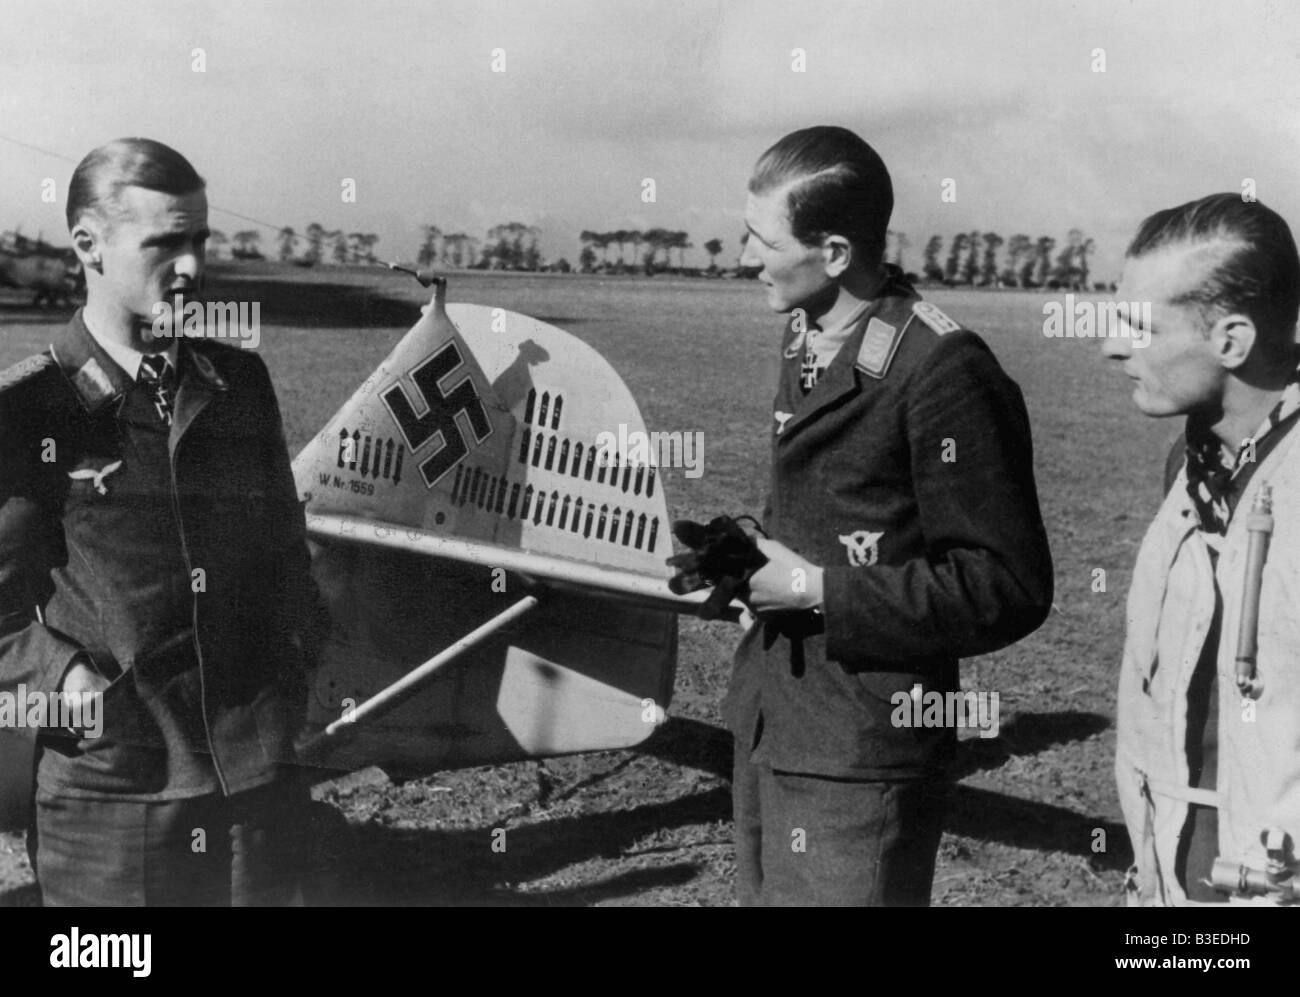 WWII / Aerial Warfare / L}tzow and Balth - Stock Image